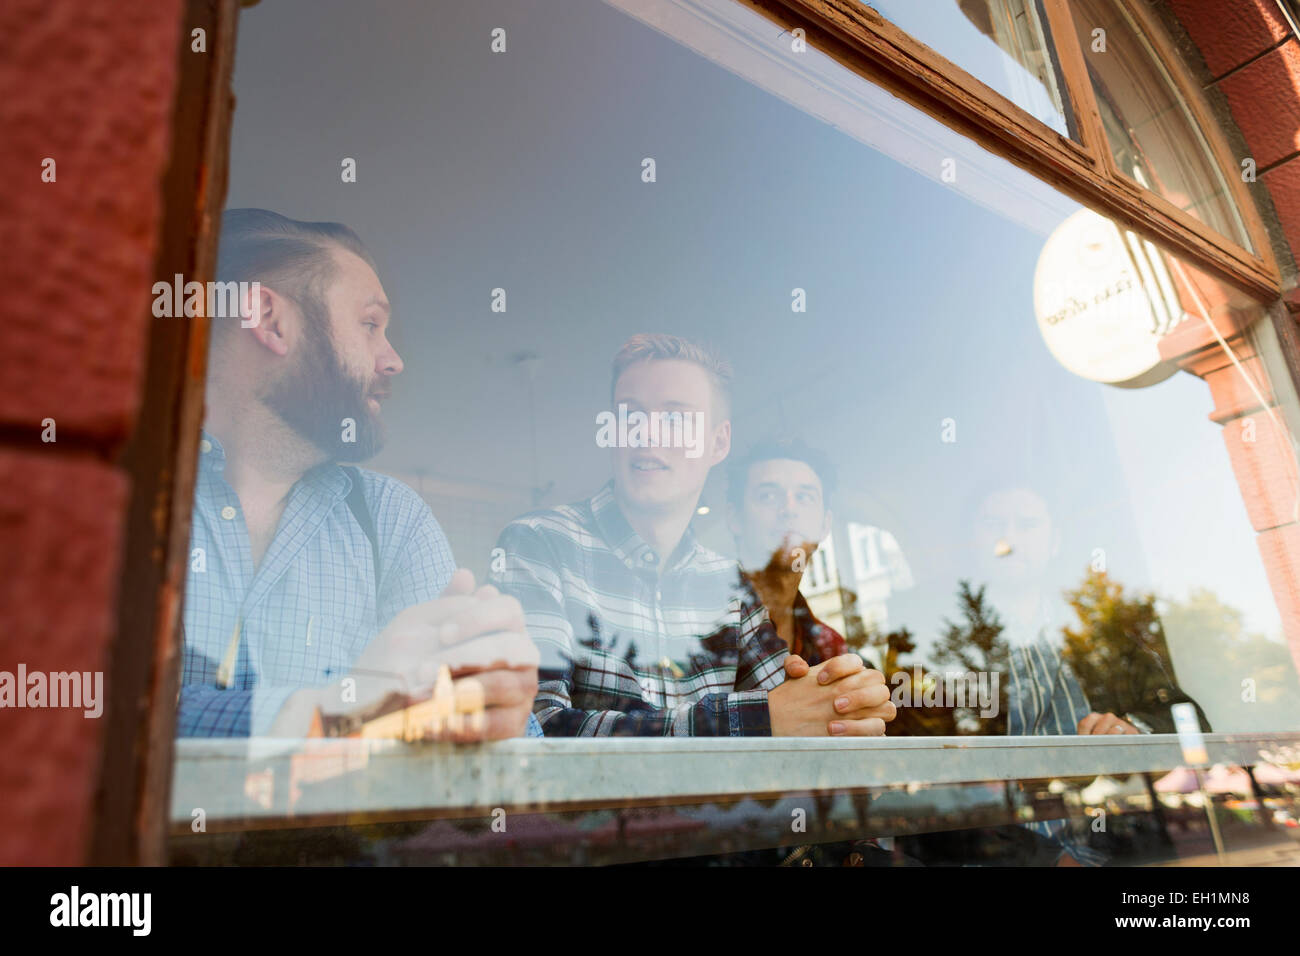 Businessmen communicating in cafe seen through glass window - Stock Image